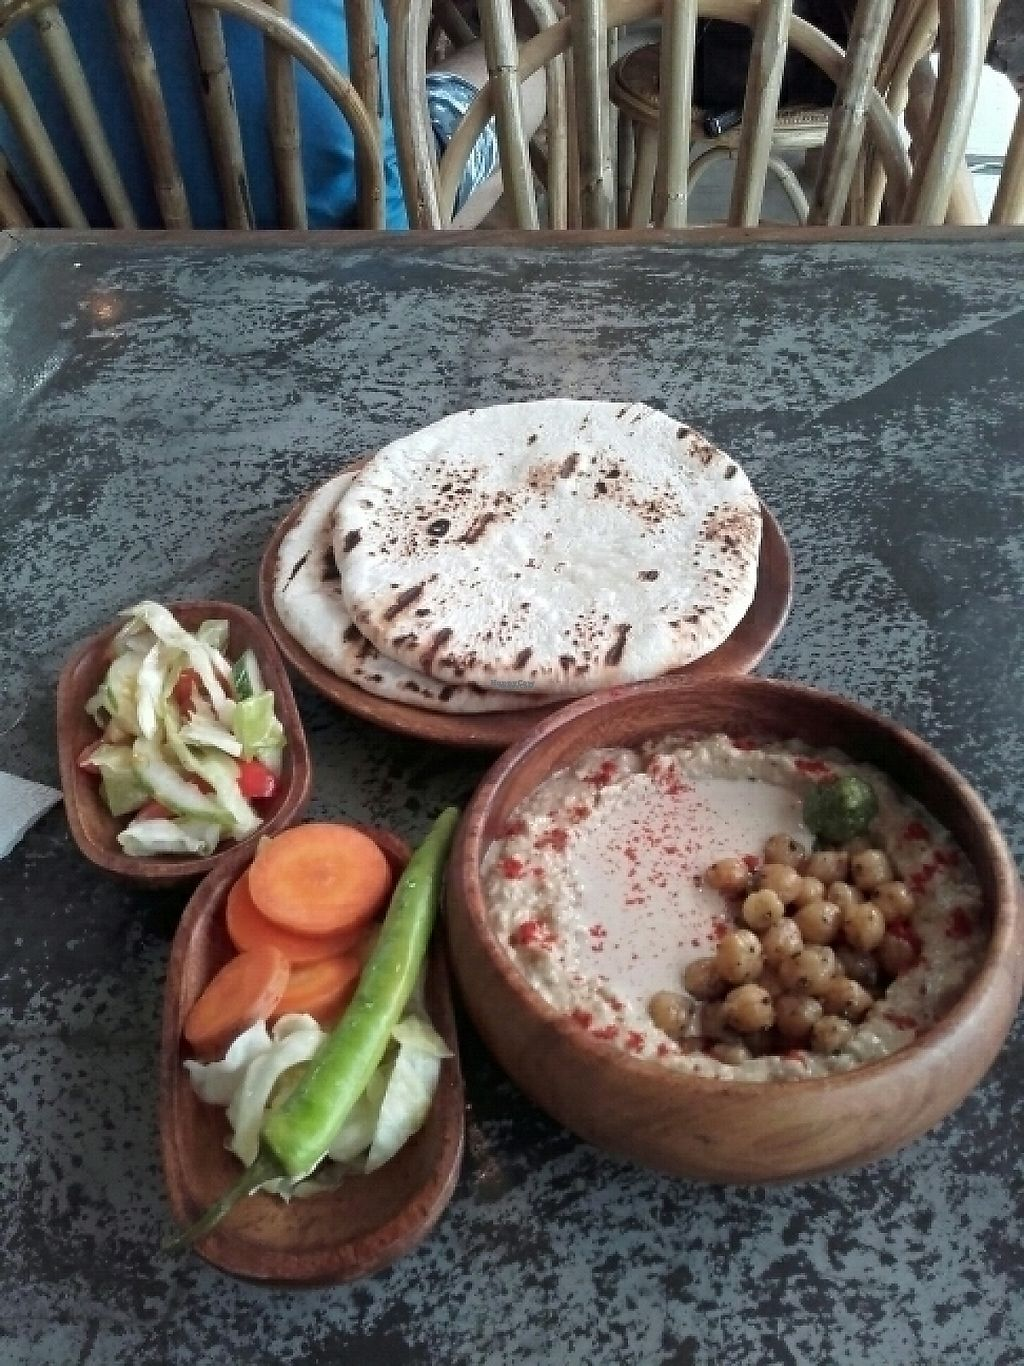 """Photo of Happiness Express  by <a href=""""/members/profile/ihriel"""">ihriel</a> <br/>Hummus, pitas & salad <br/> March 21, 2017  - <a href='/contact/abuse/image/88461/239326'>Report</a>"""